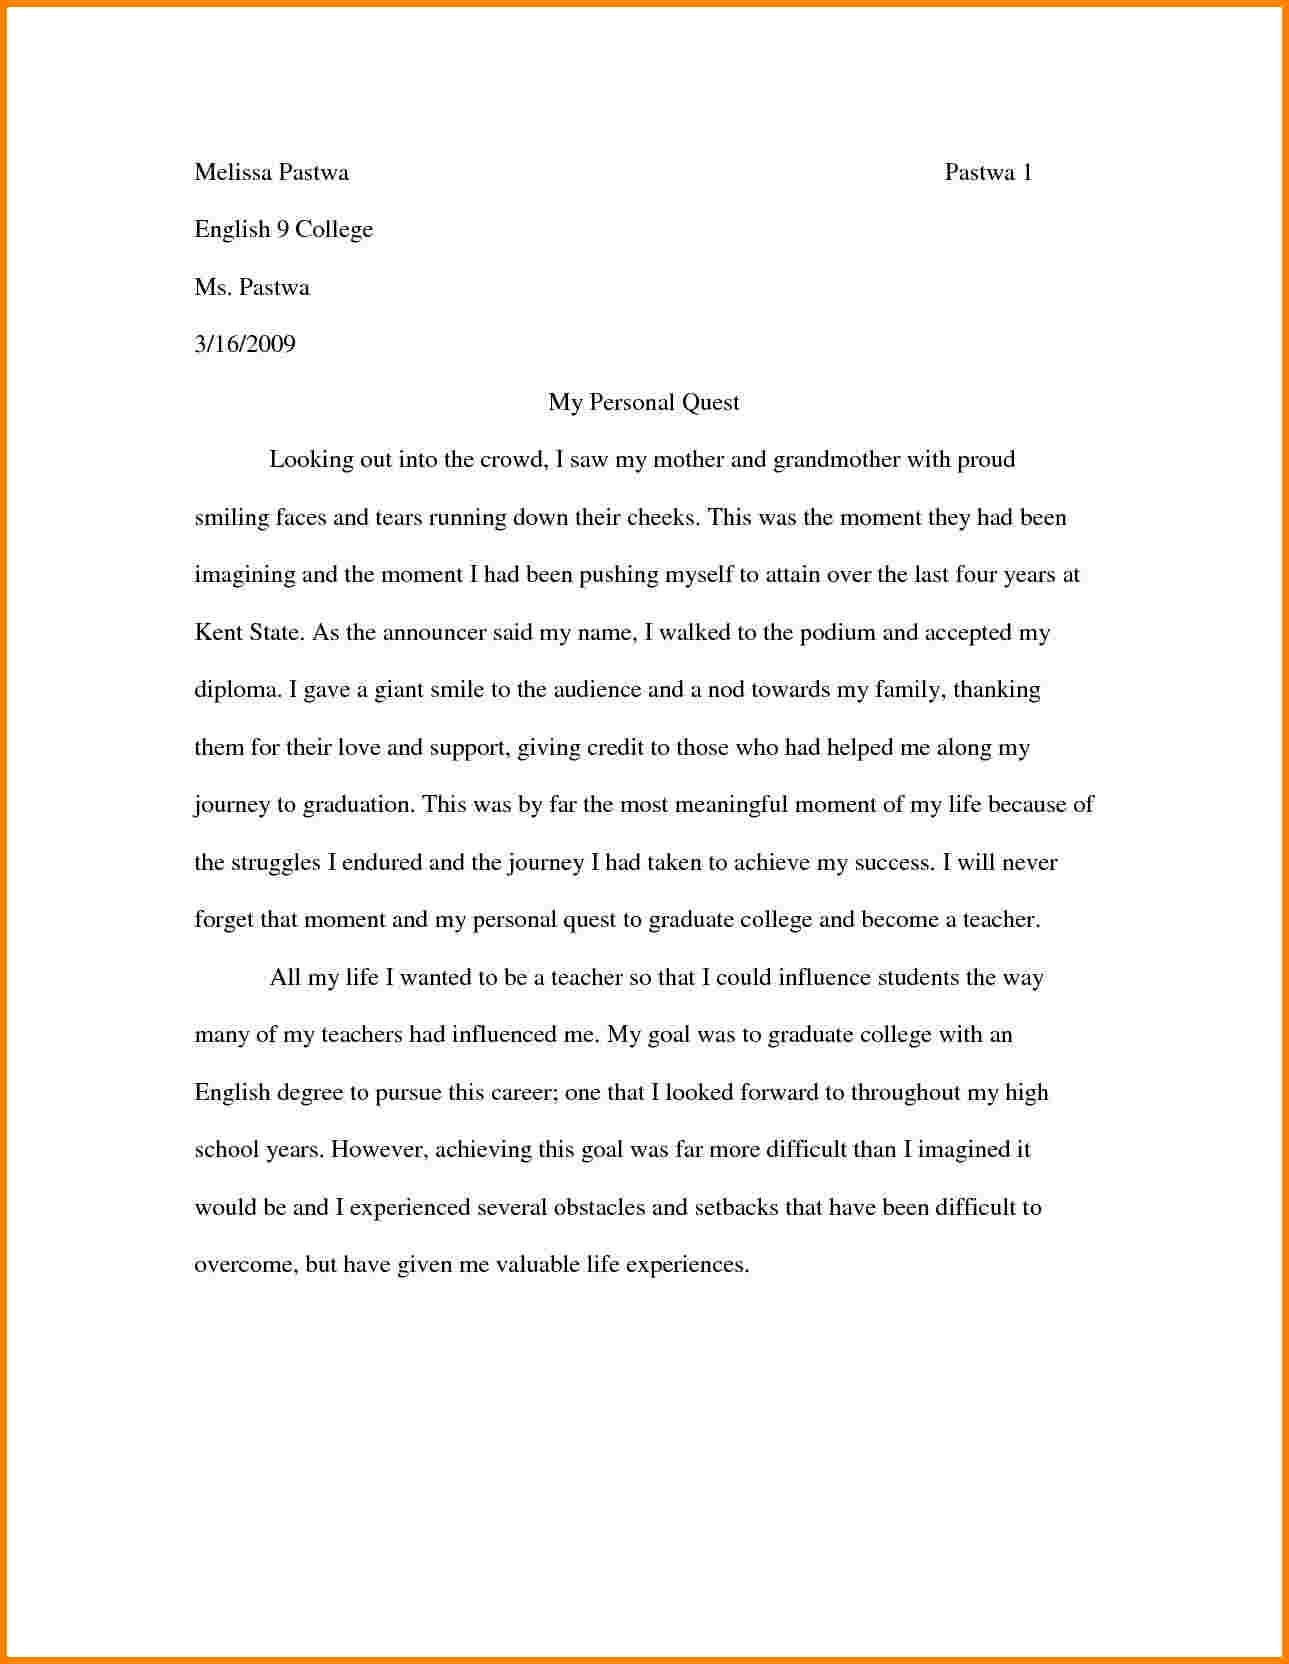 002 College Essays Essay Examples Writings And Application Example Of Philosophy Statement Case Best Frightening 2017 Prompts Boston Scholarship Full